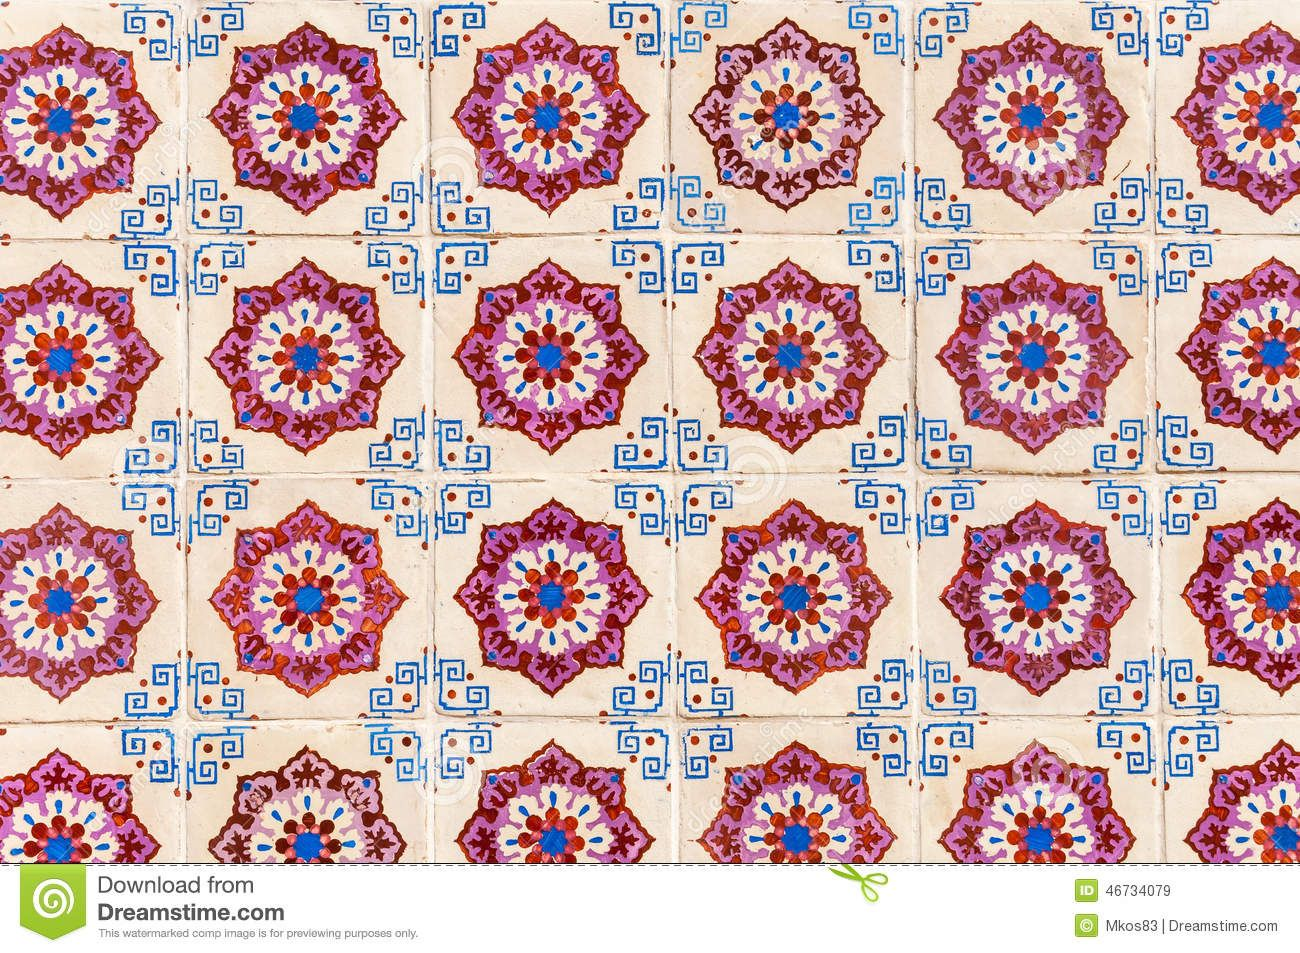 Background made of portuguese ceramic tiles called azulejos background made of portuguese ceramic tiles called azulejos download from over 39 million high quality dailygadgetfo Choice Image